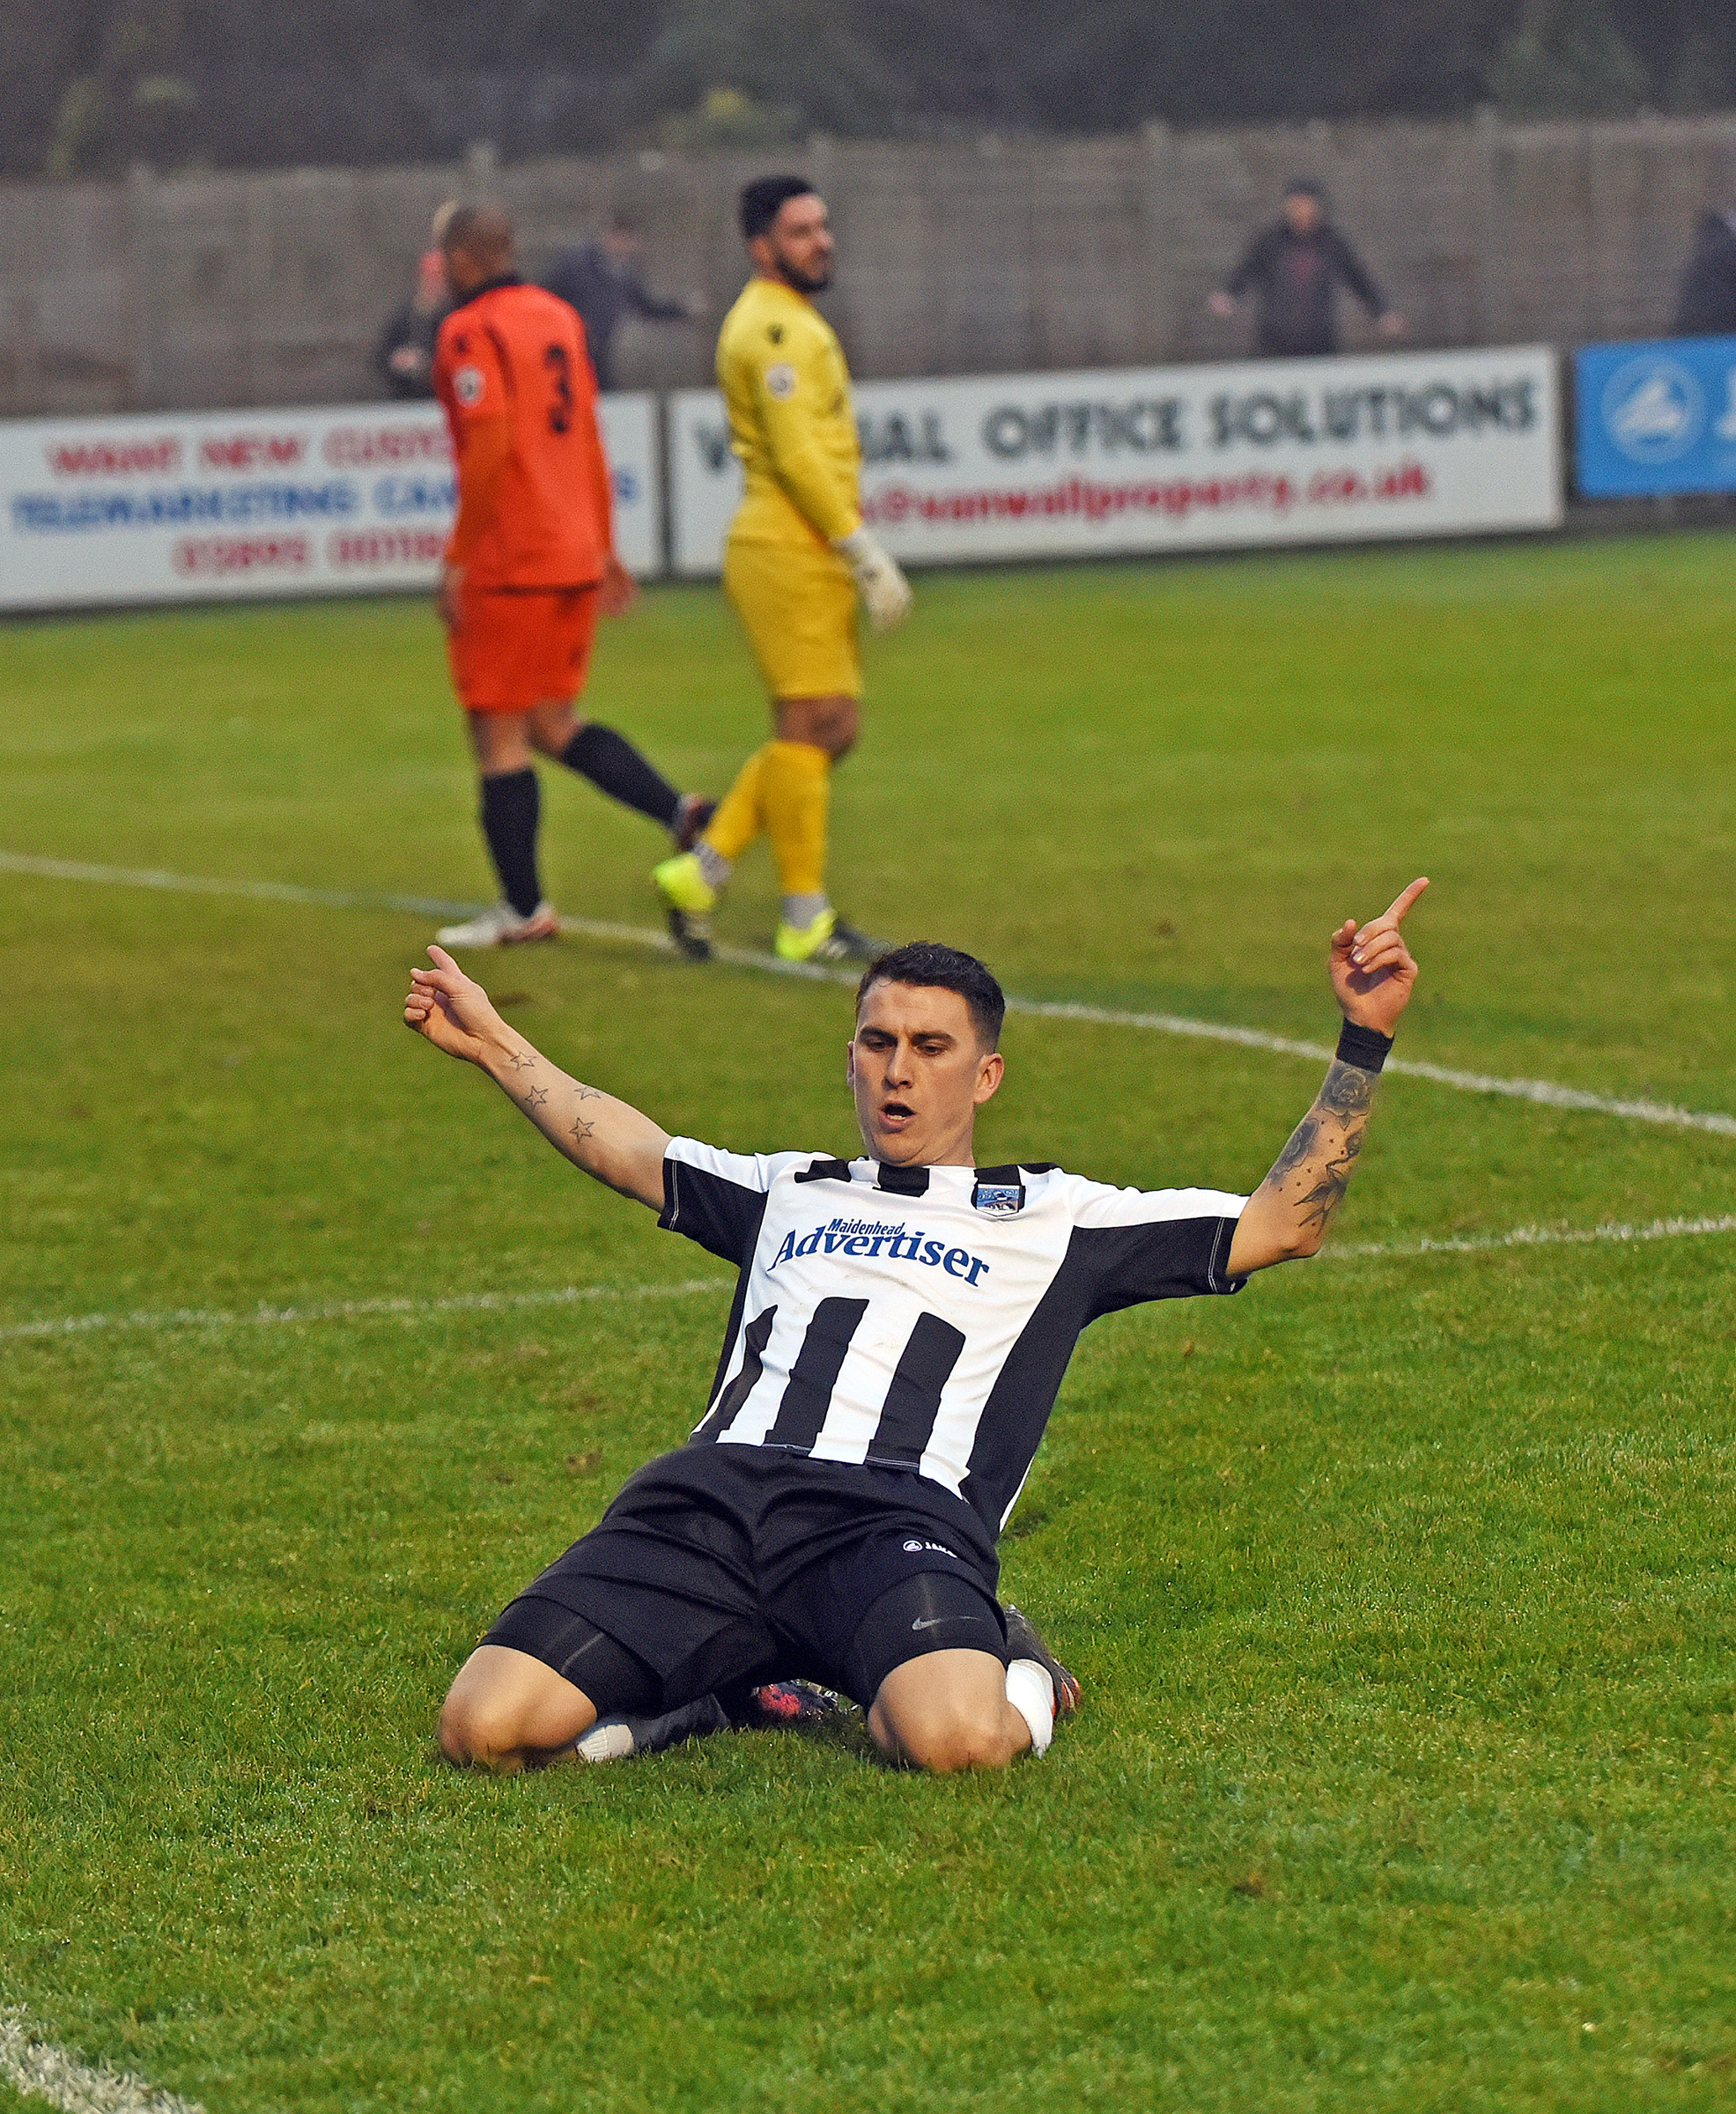 Dave Tarpey scored all four goals for Maidenhead United in the 4-1 win at AFC Fylde on Tuesday night.